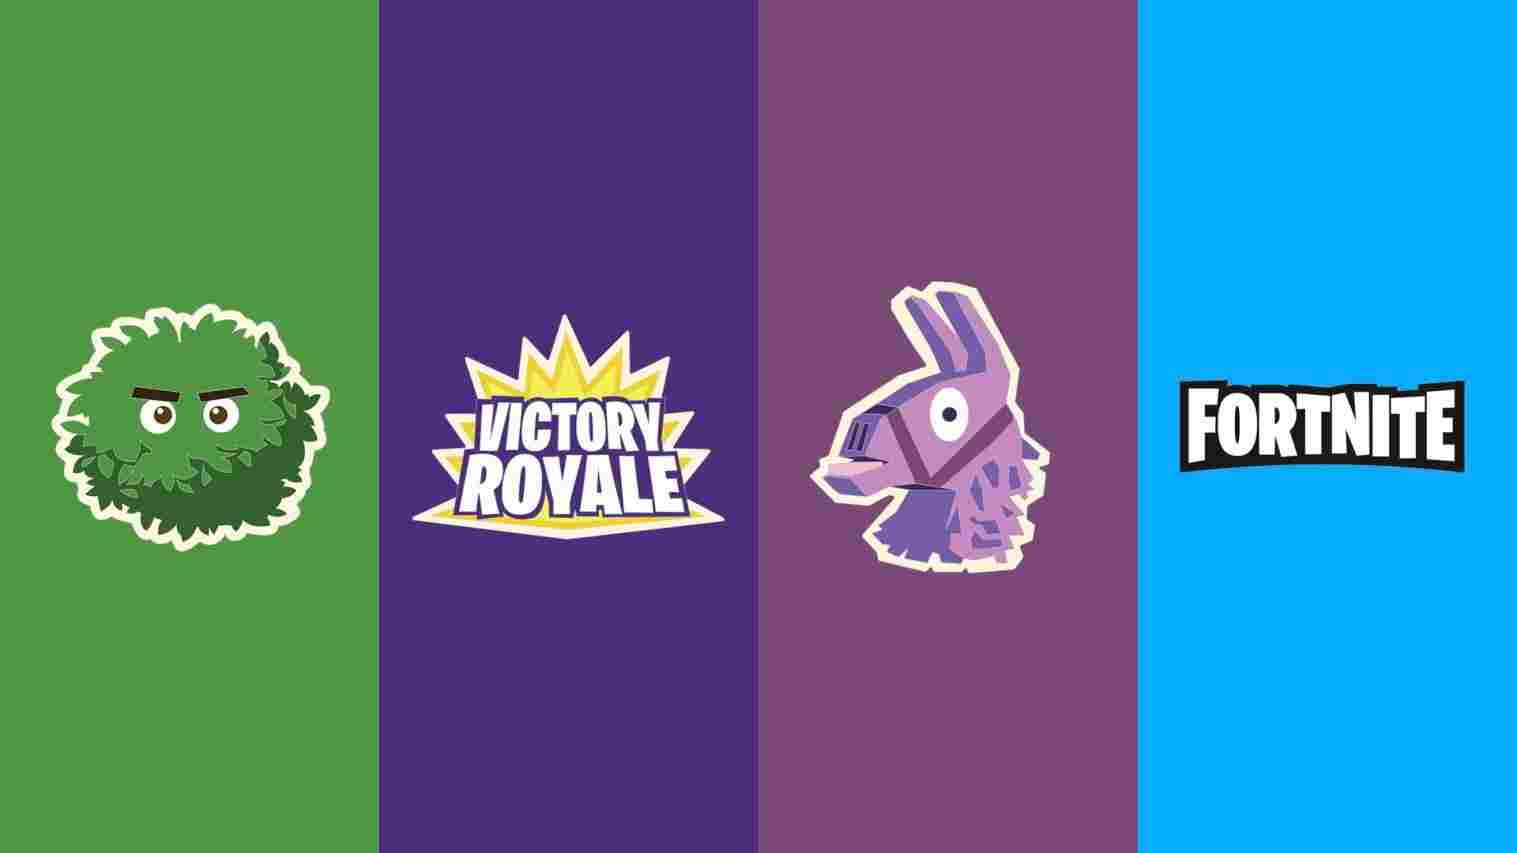 How To Draw Fortnite Logo 7 Fortnite Drawing Logo For Free.